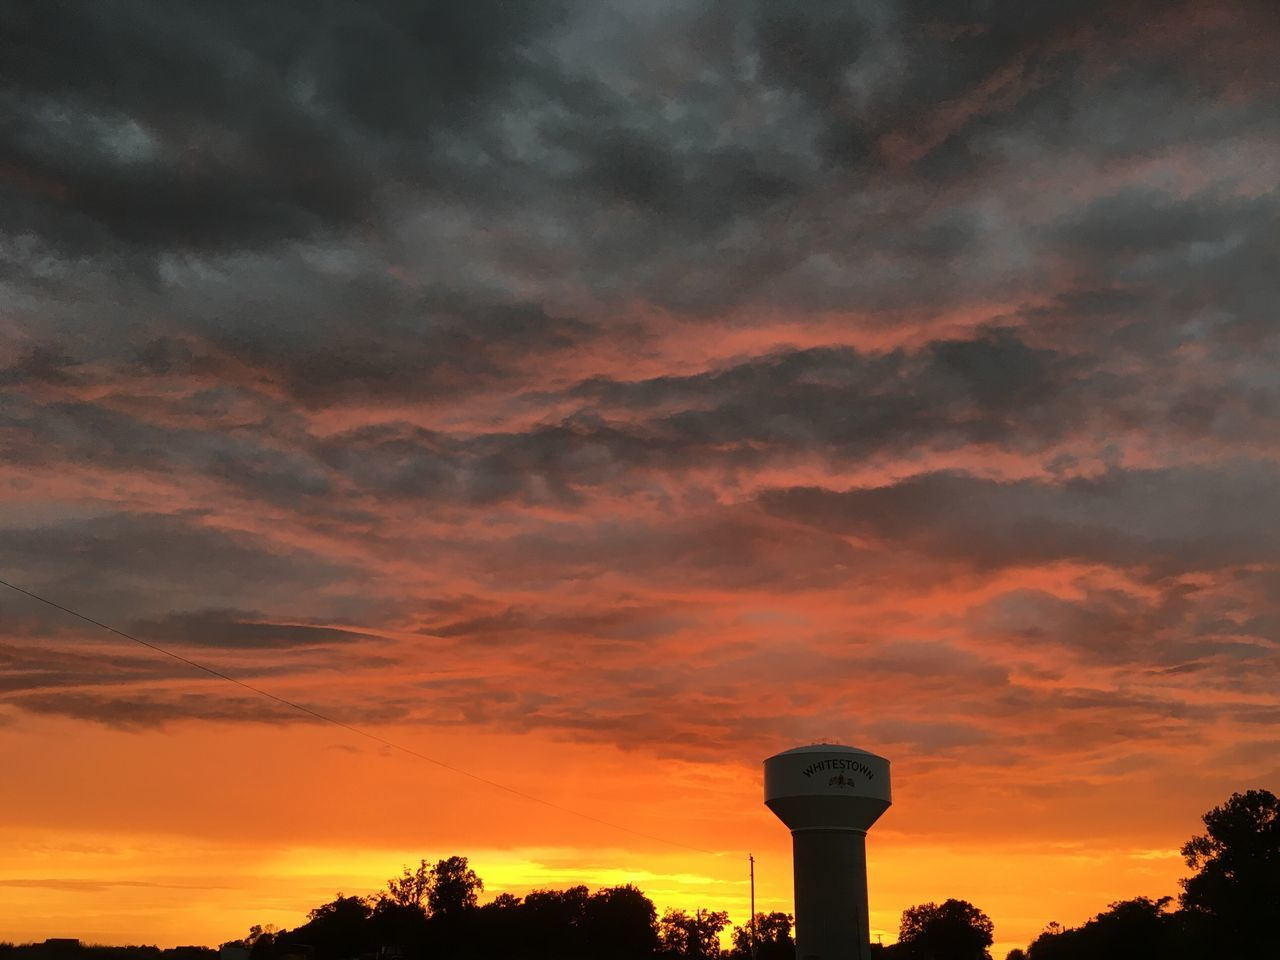 Water Tower Amidst Trees Against Cloudy Sky During Sunset